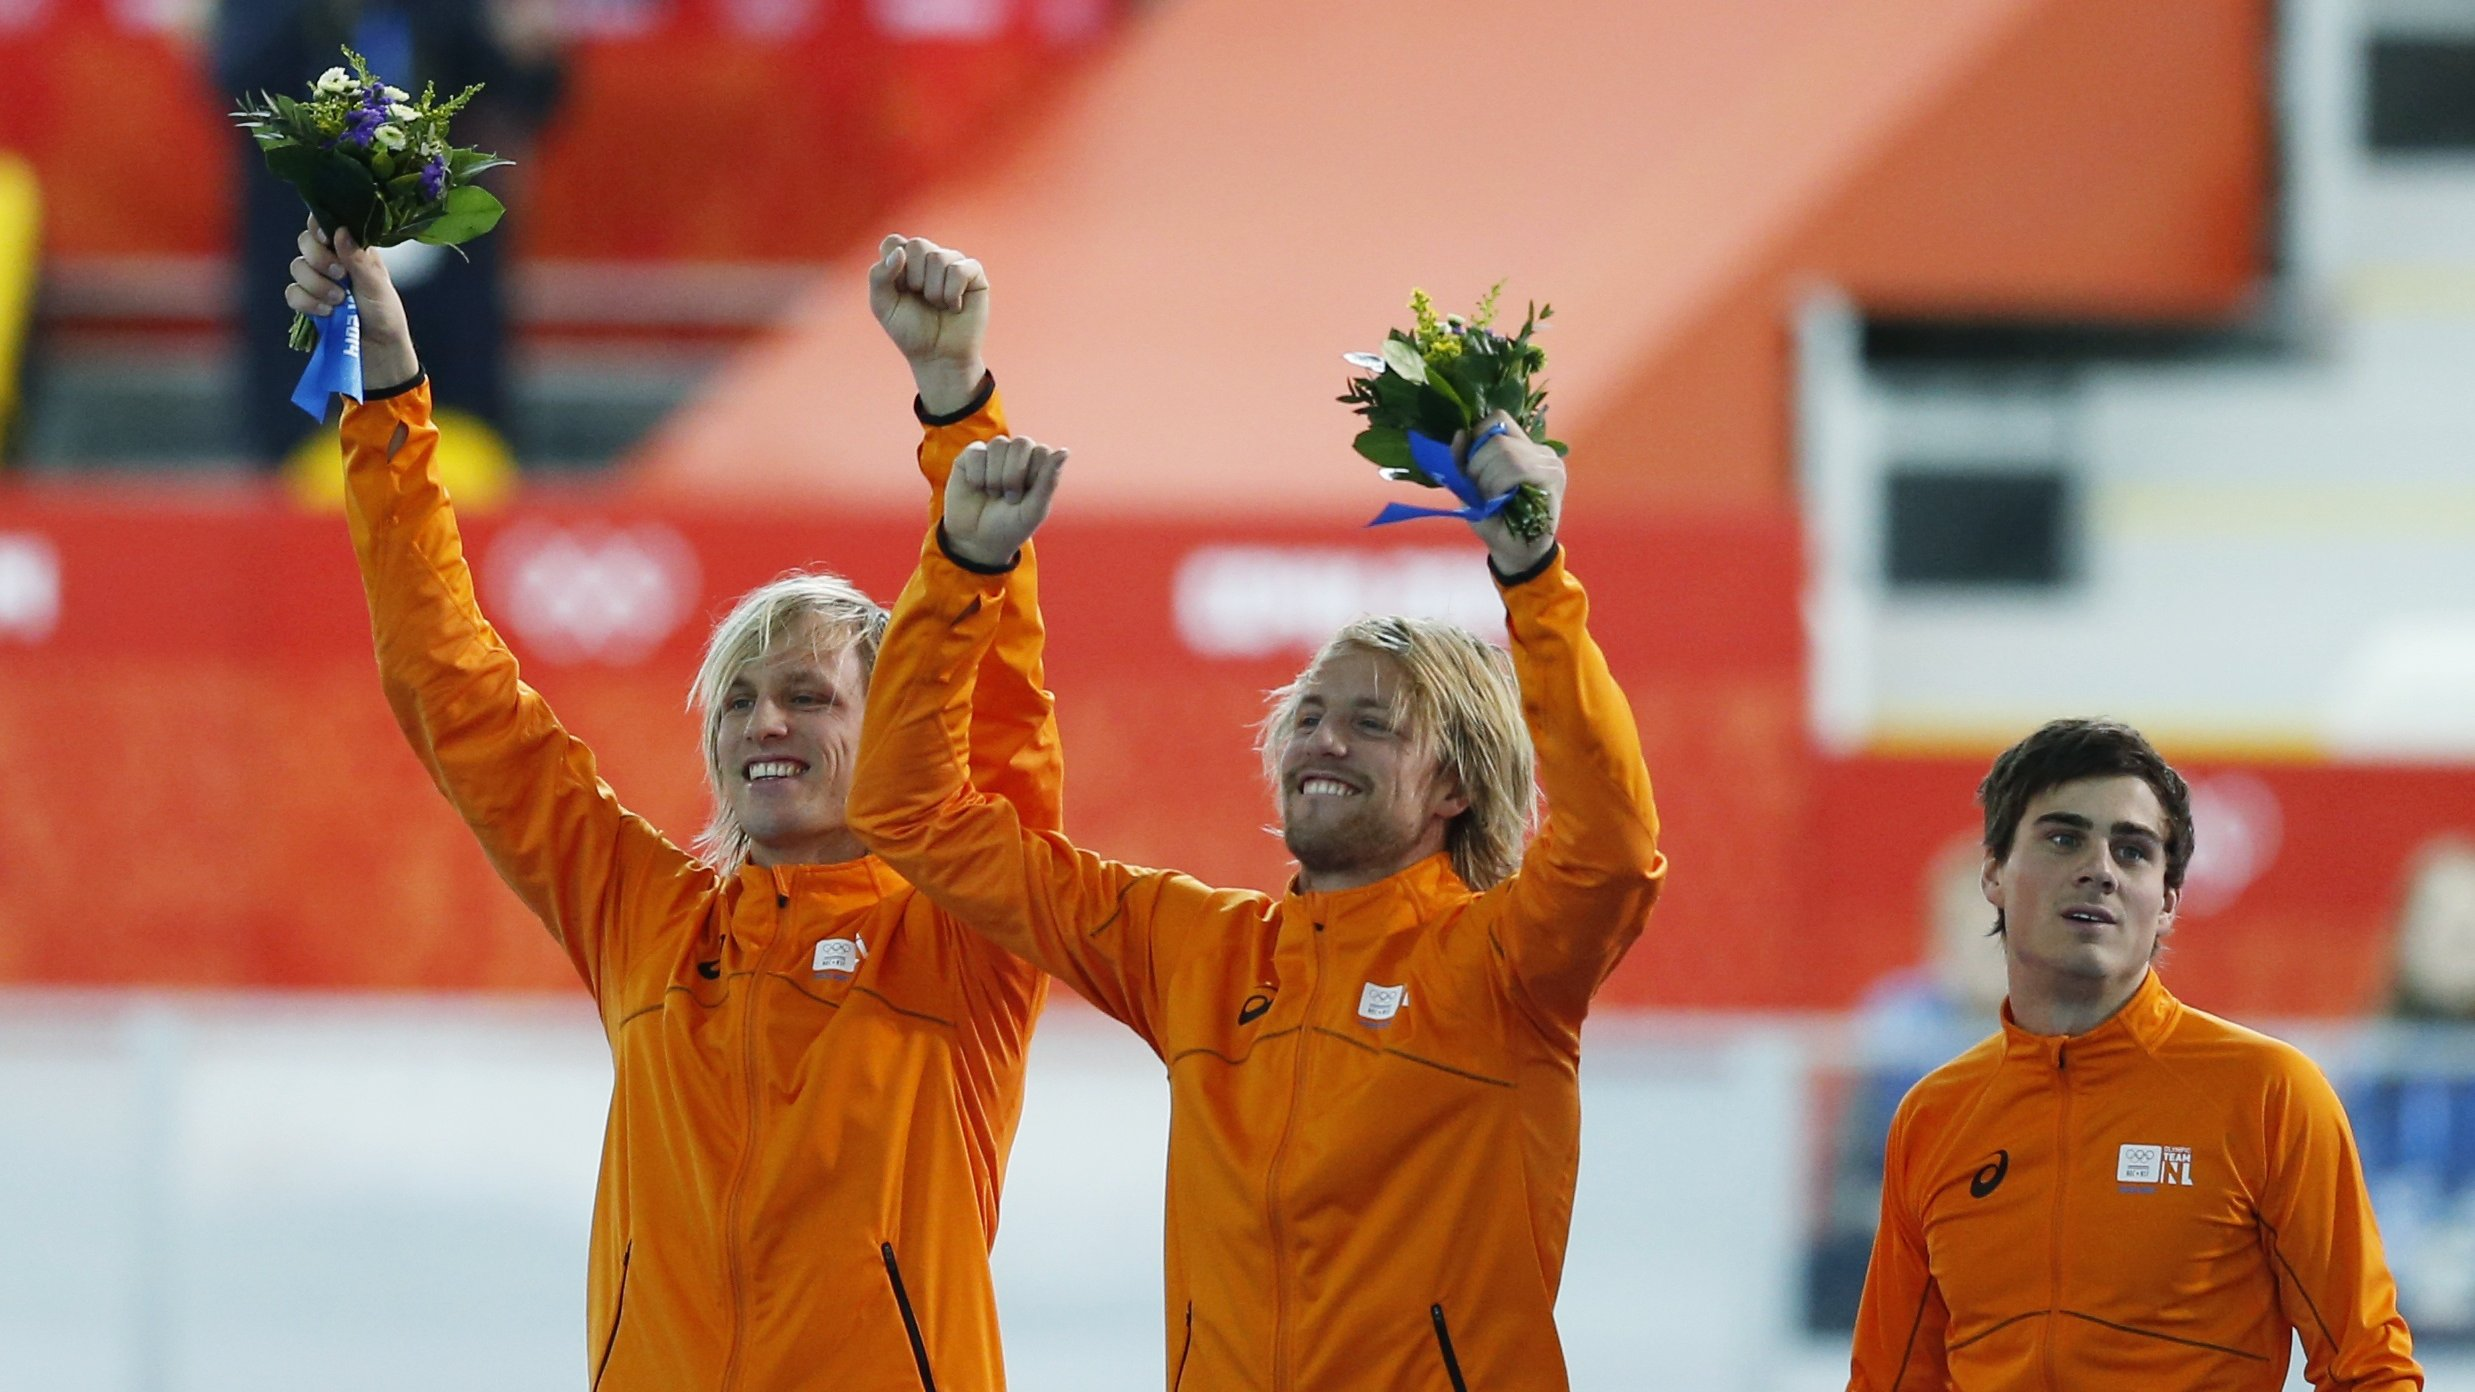 Winner Michel Mulder of the Netherlands (C), his twin brother second-placed Ronald Mulder (L), and their compatriot third-placed Jan Smeekens celebrate during the flower ceremony for the men's 500 metres speed skating race at the Adler Arena during the 2014 Sochi Winter Olympics February 10, 2014. REUTERS/Issei Kato (RUSSIA  - Tags: OLYMPICS SPORT SPEED SKATING)   - RTX18JJ0